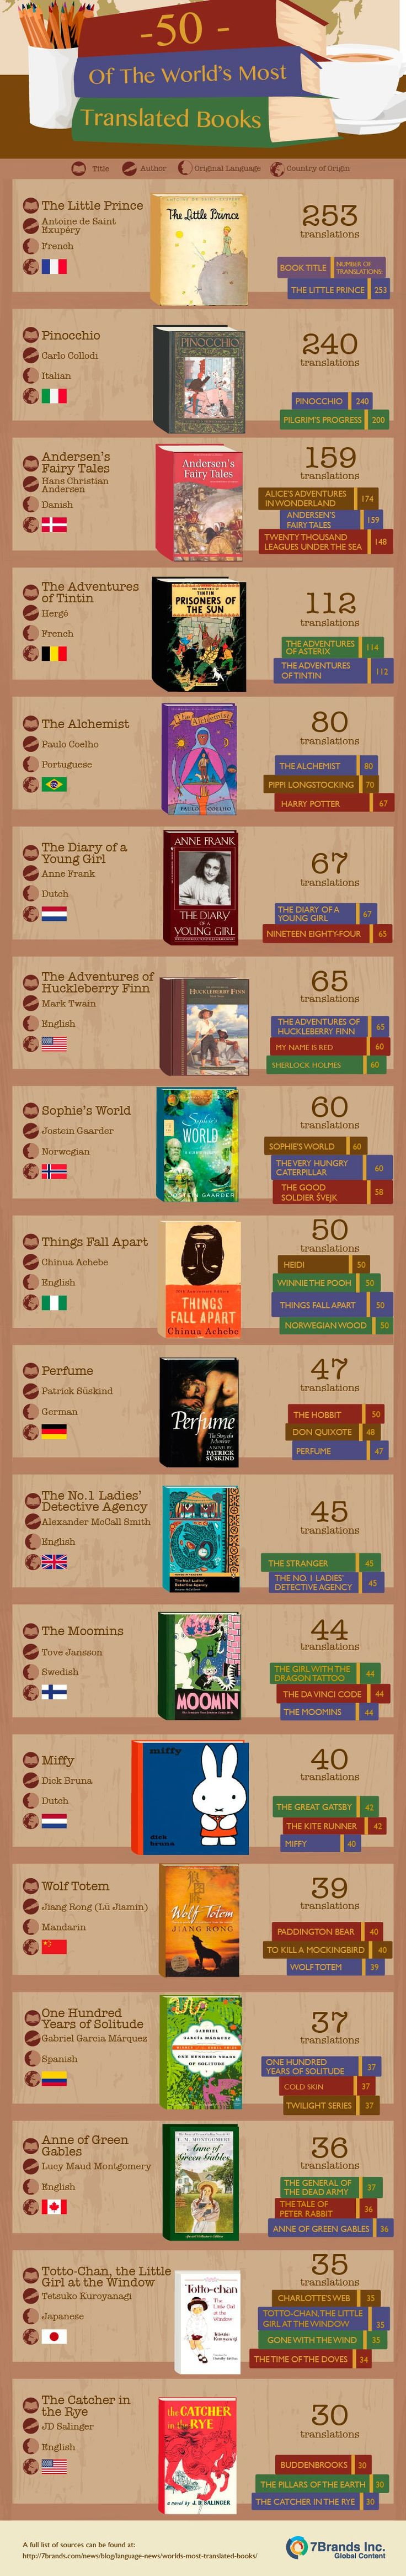 The world's most translated books